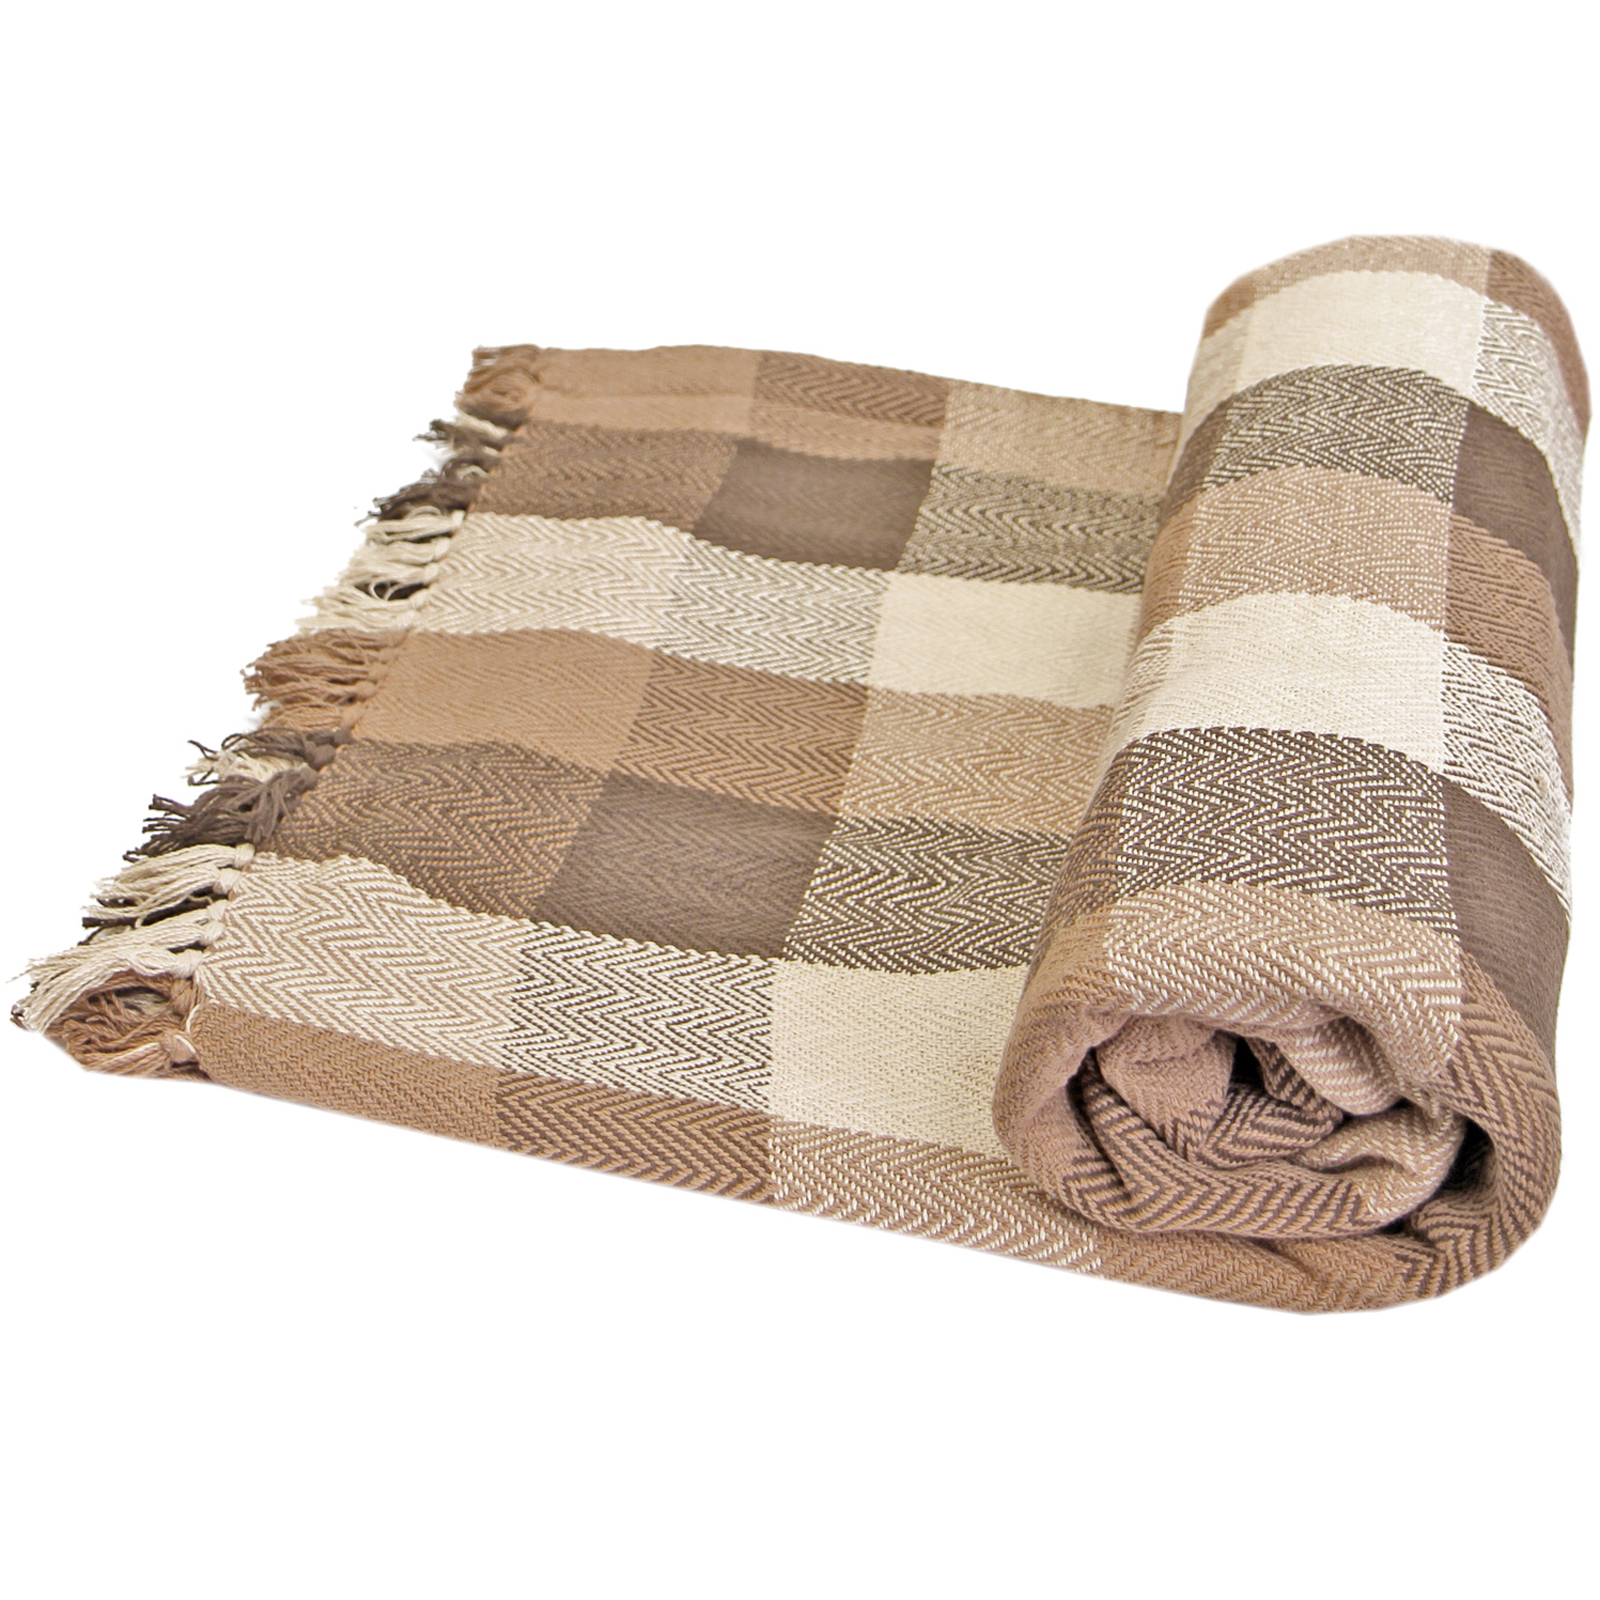 Luxury soft 100 cotton checked throws large thermal sofa for Soft blankets and throws